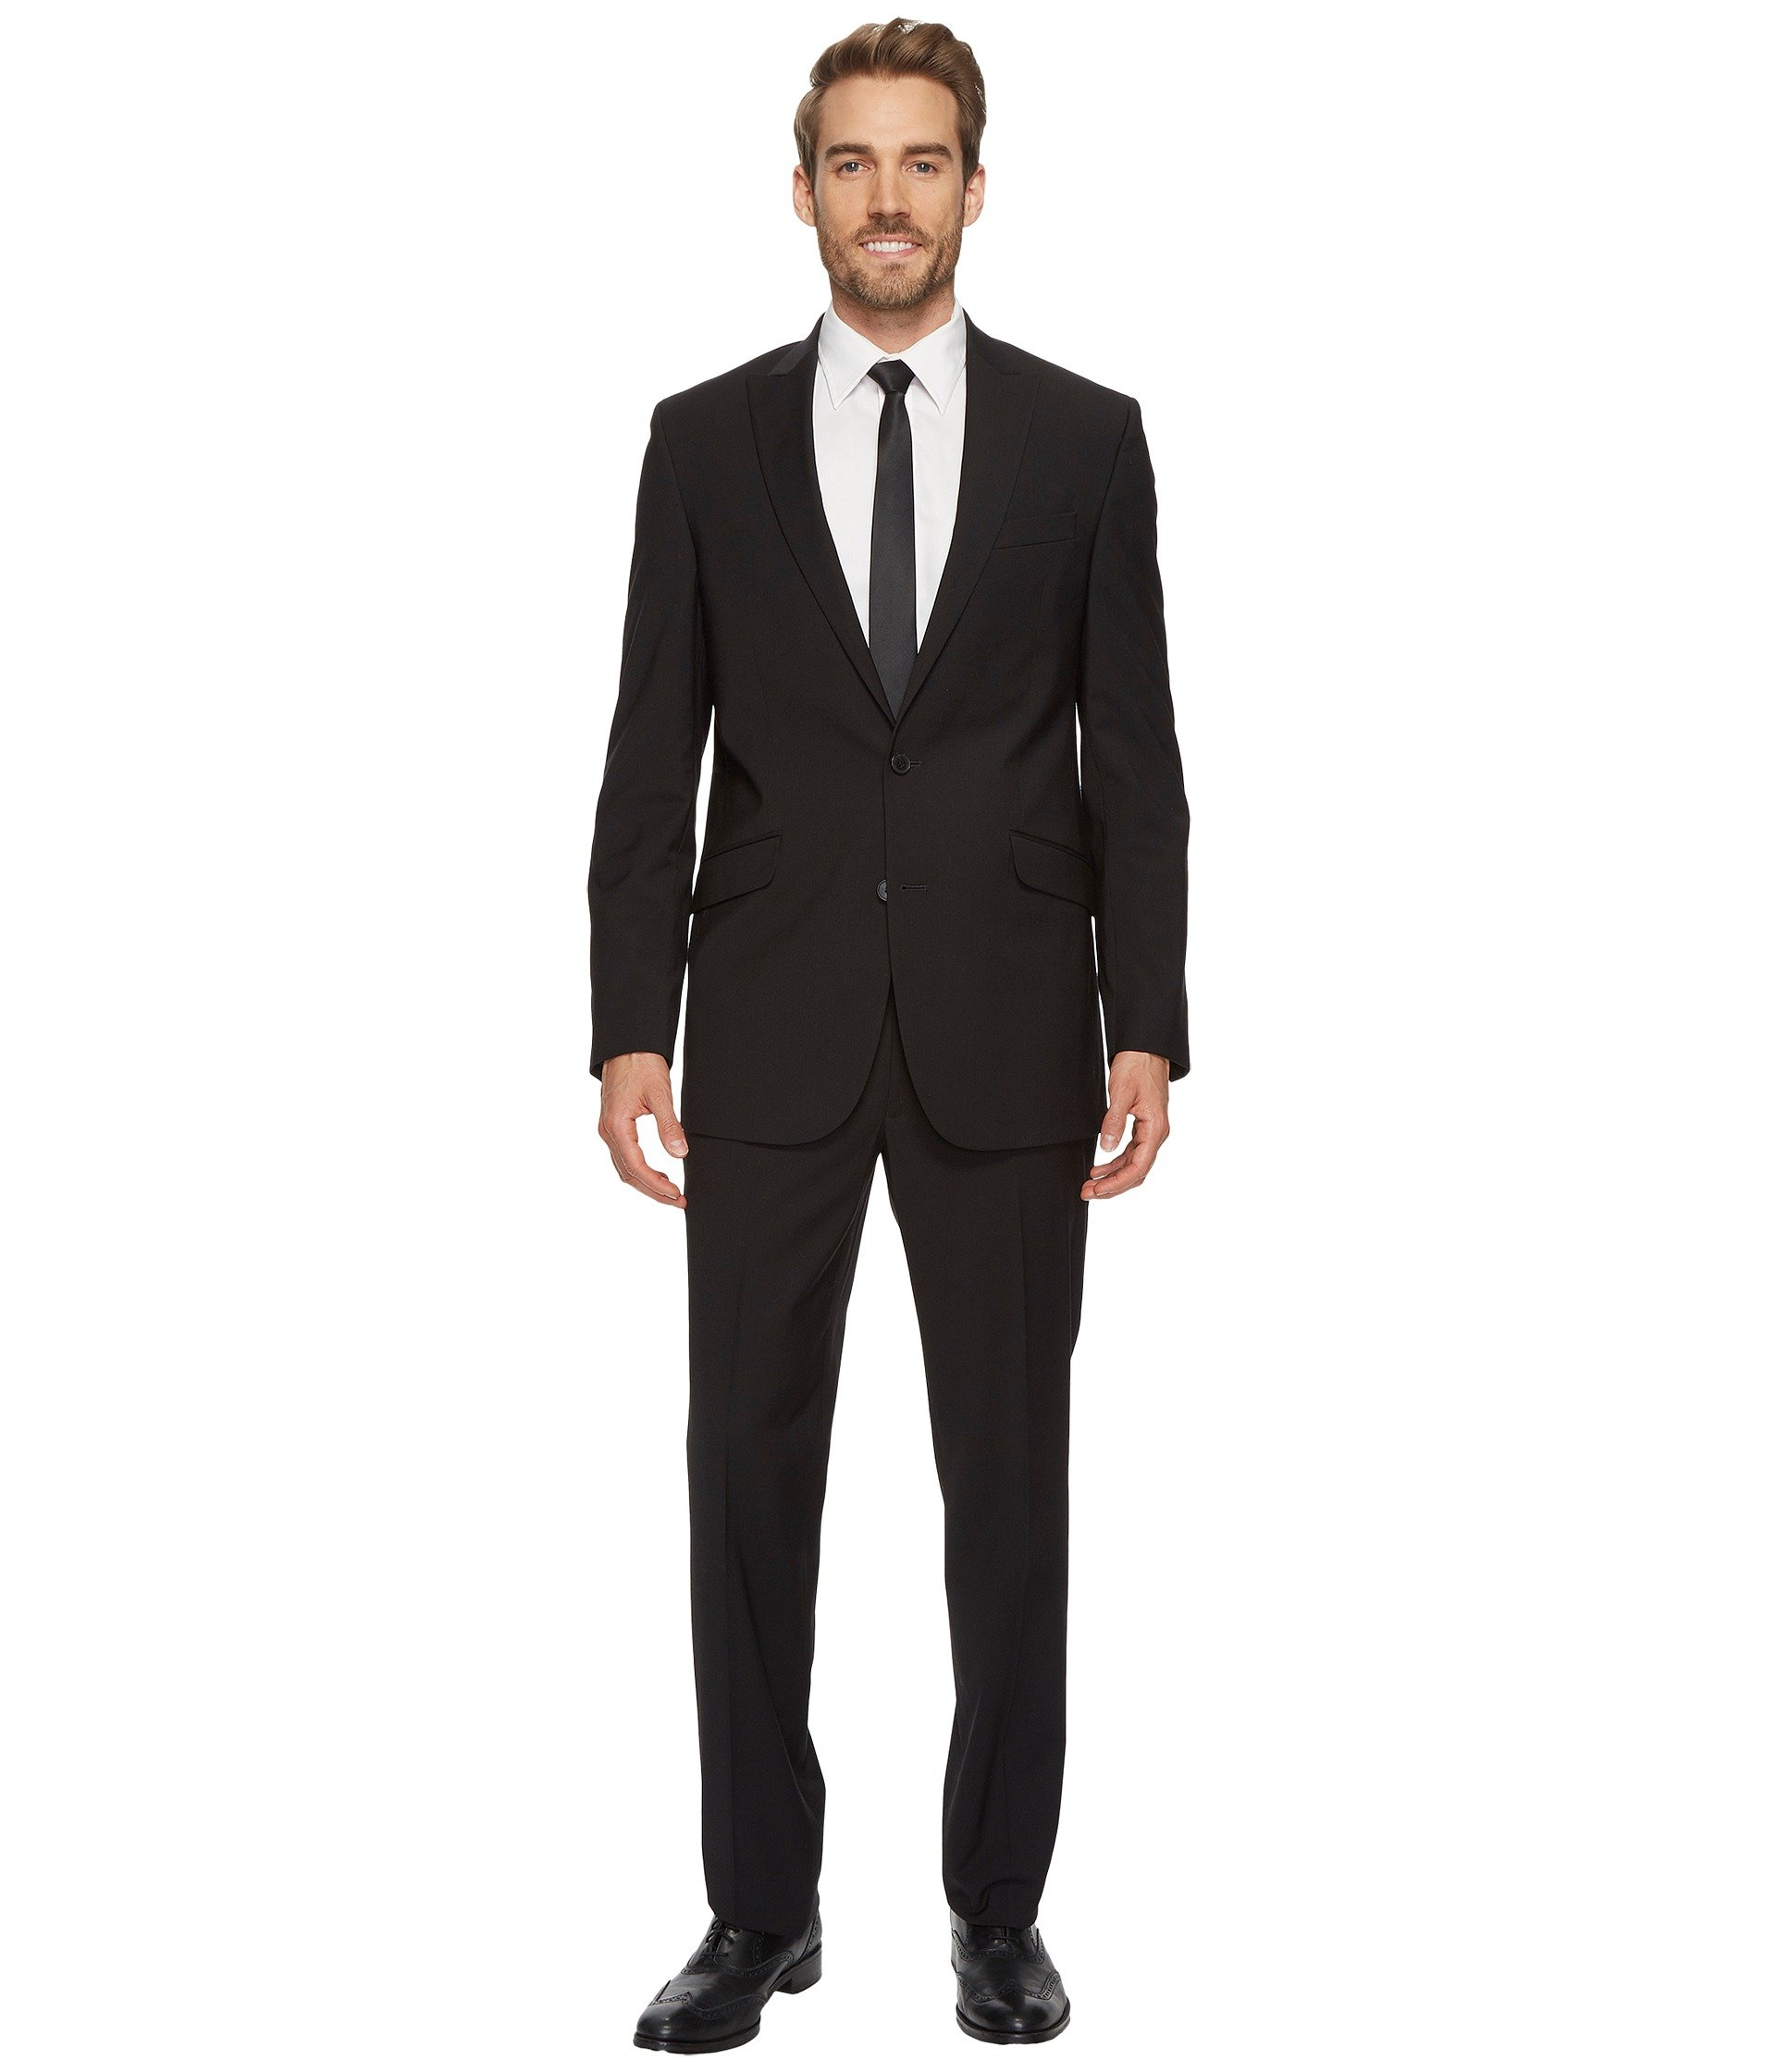 Vestido para Hombre Kenneth Cole Reaction Tonal Stripe Suit  + Kenneth Cole Reaction en VeoyCompro.net